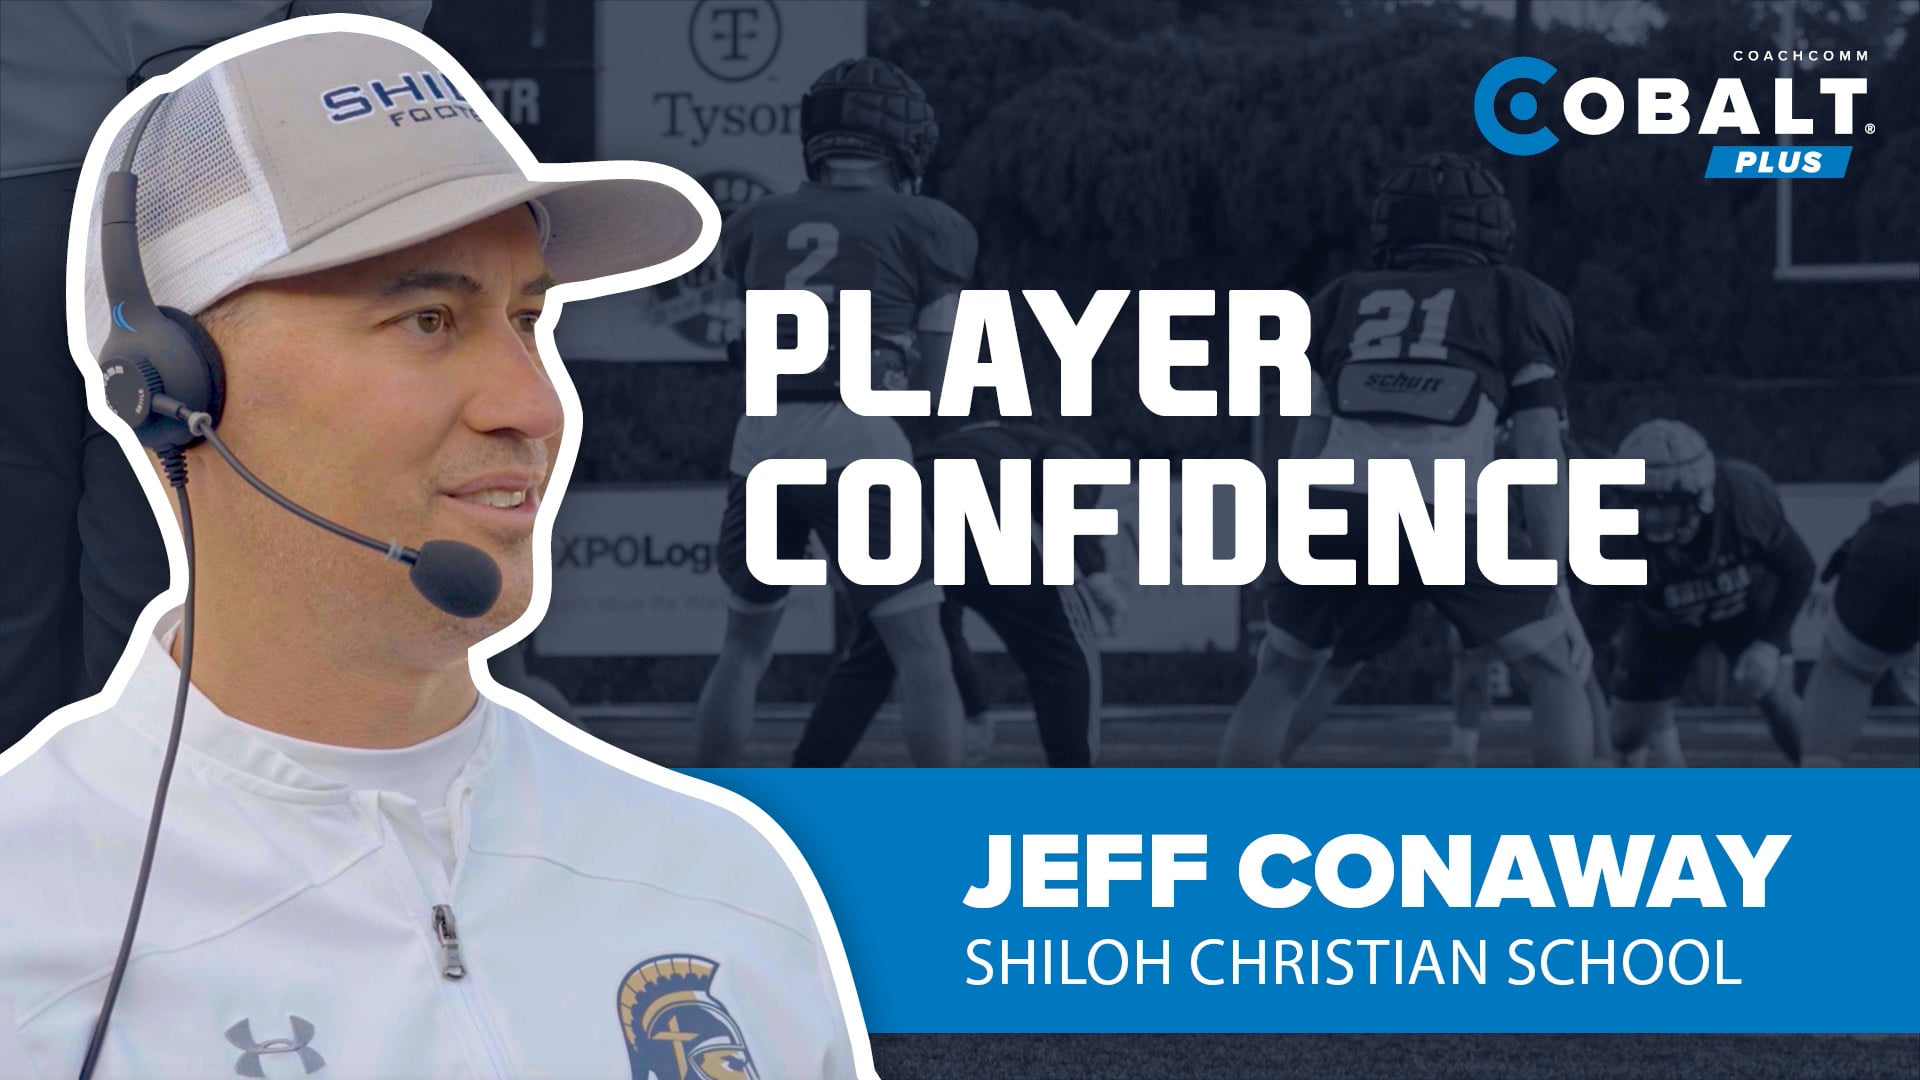 Cobalt PLUS and Player Confidence